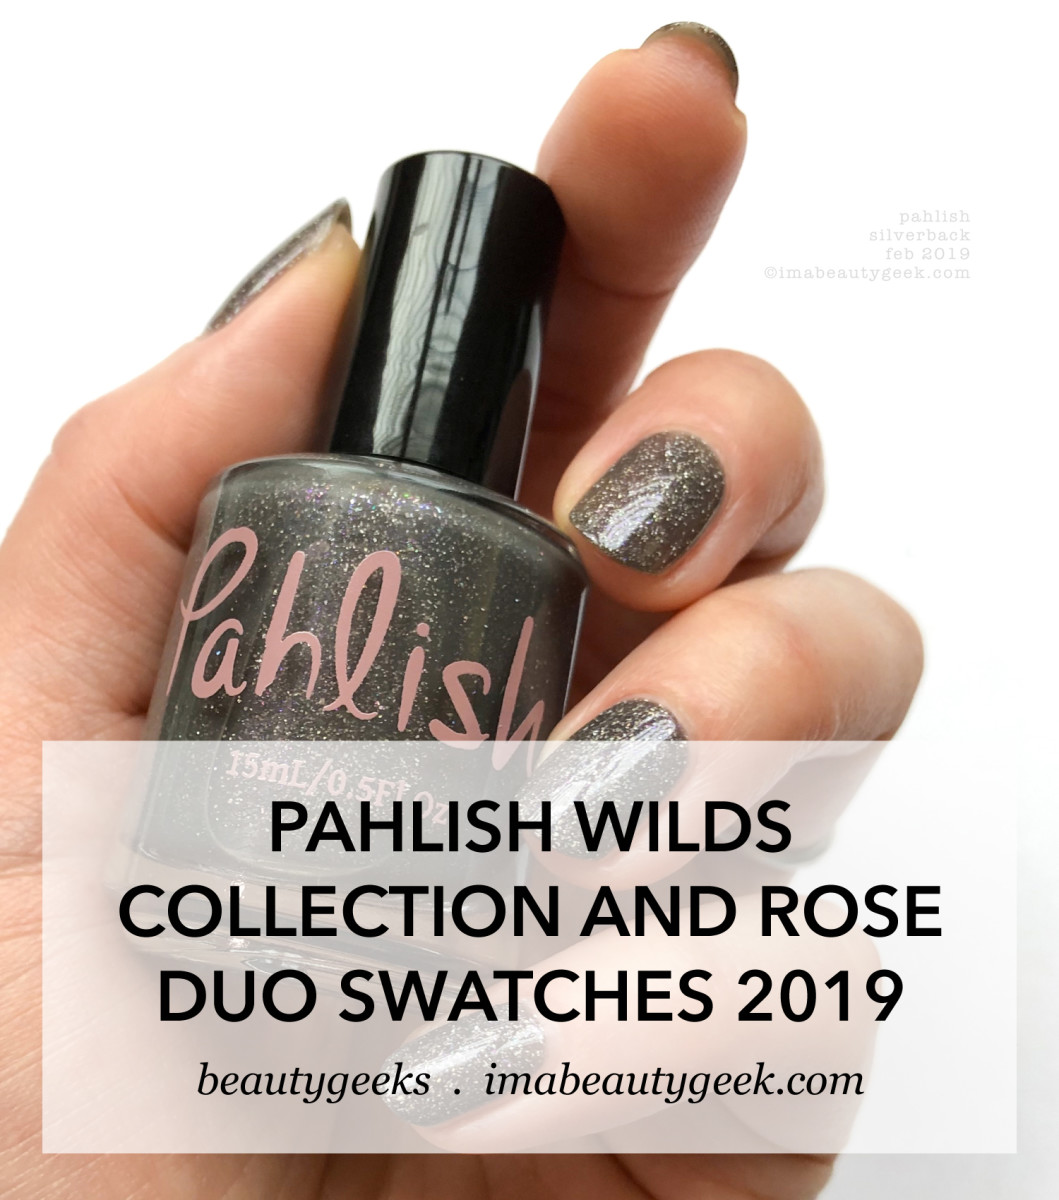 Pahlish Wilds Collection and Rose Duo Swatches 2019